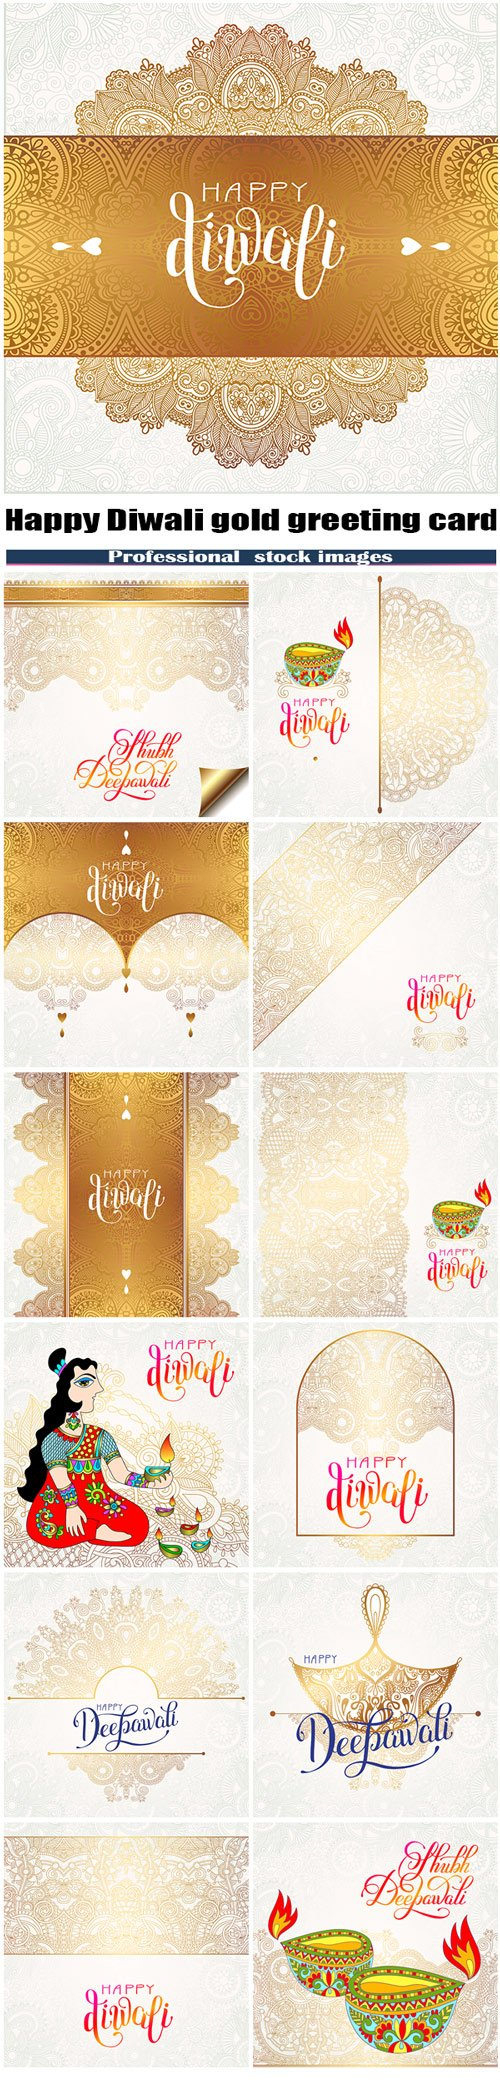 Happy Diwali gold greeting card